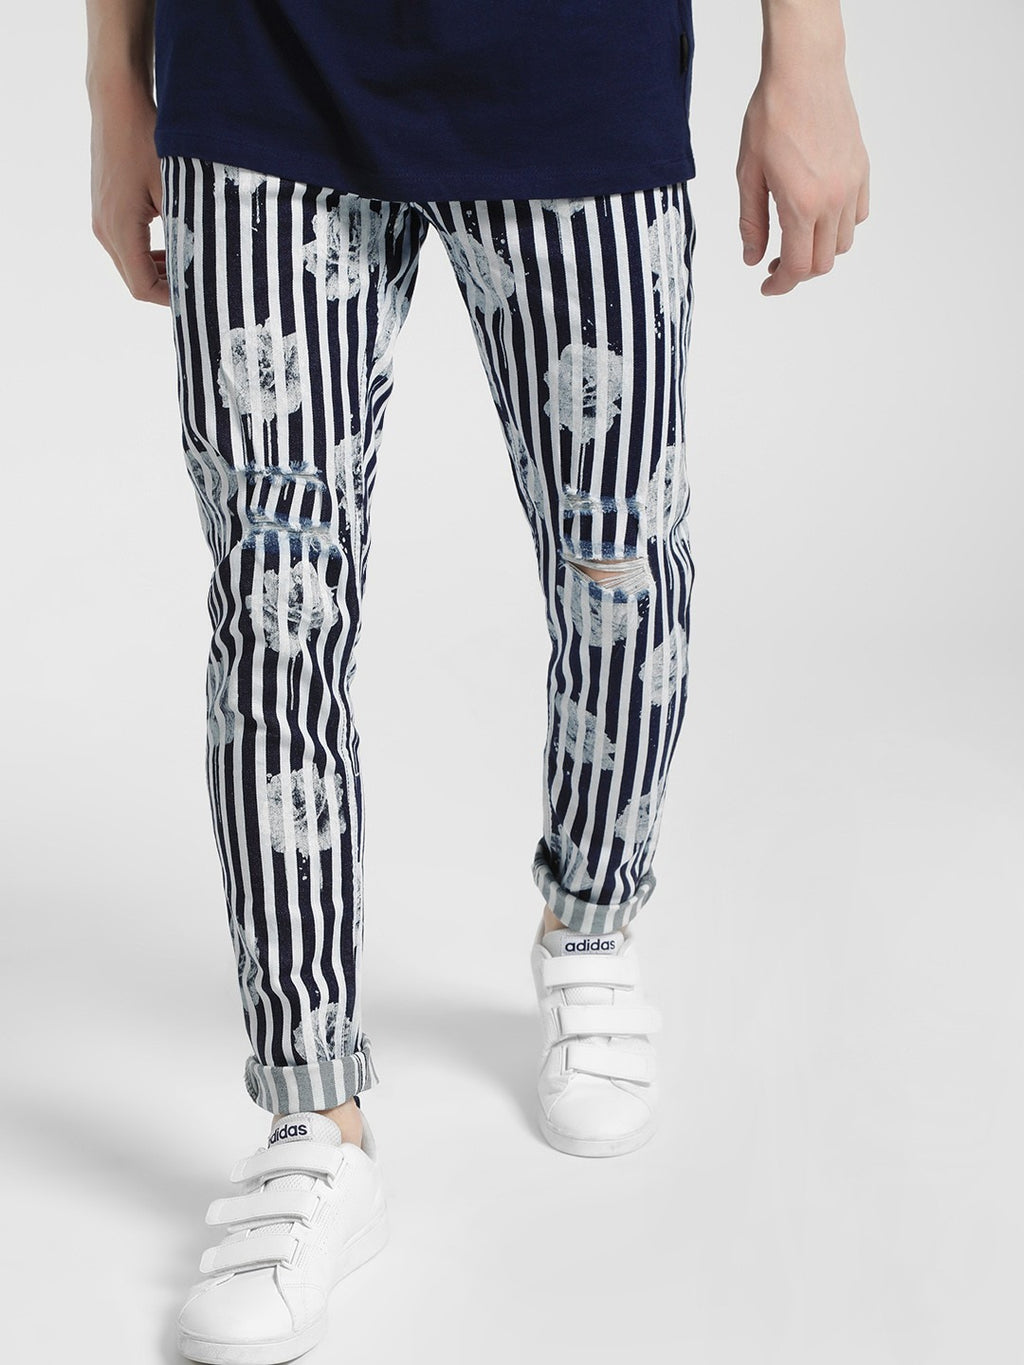 Stripe Overdyed Floral Print Jeans